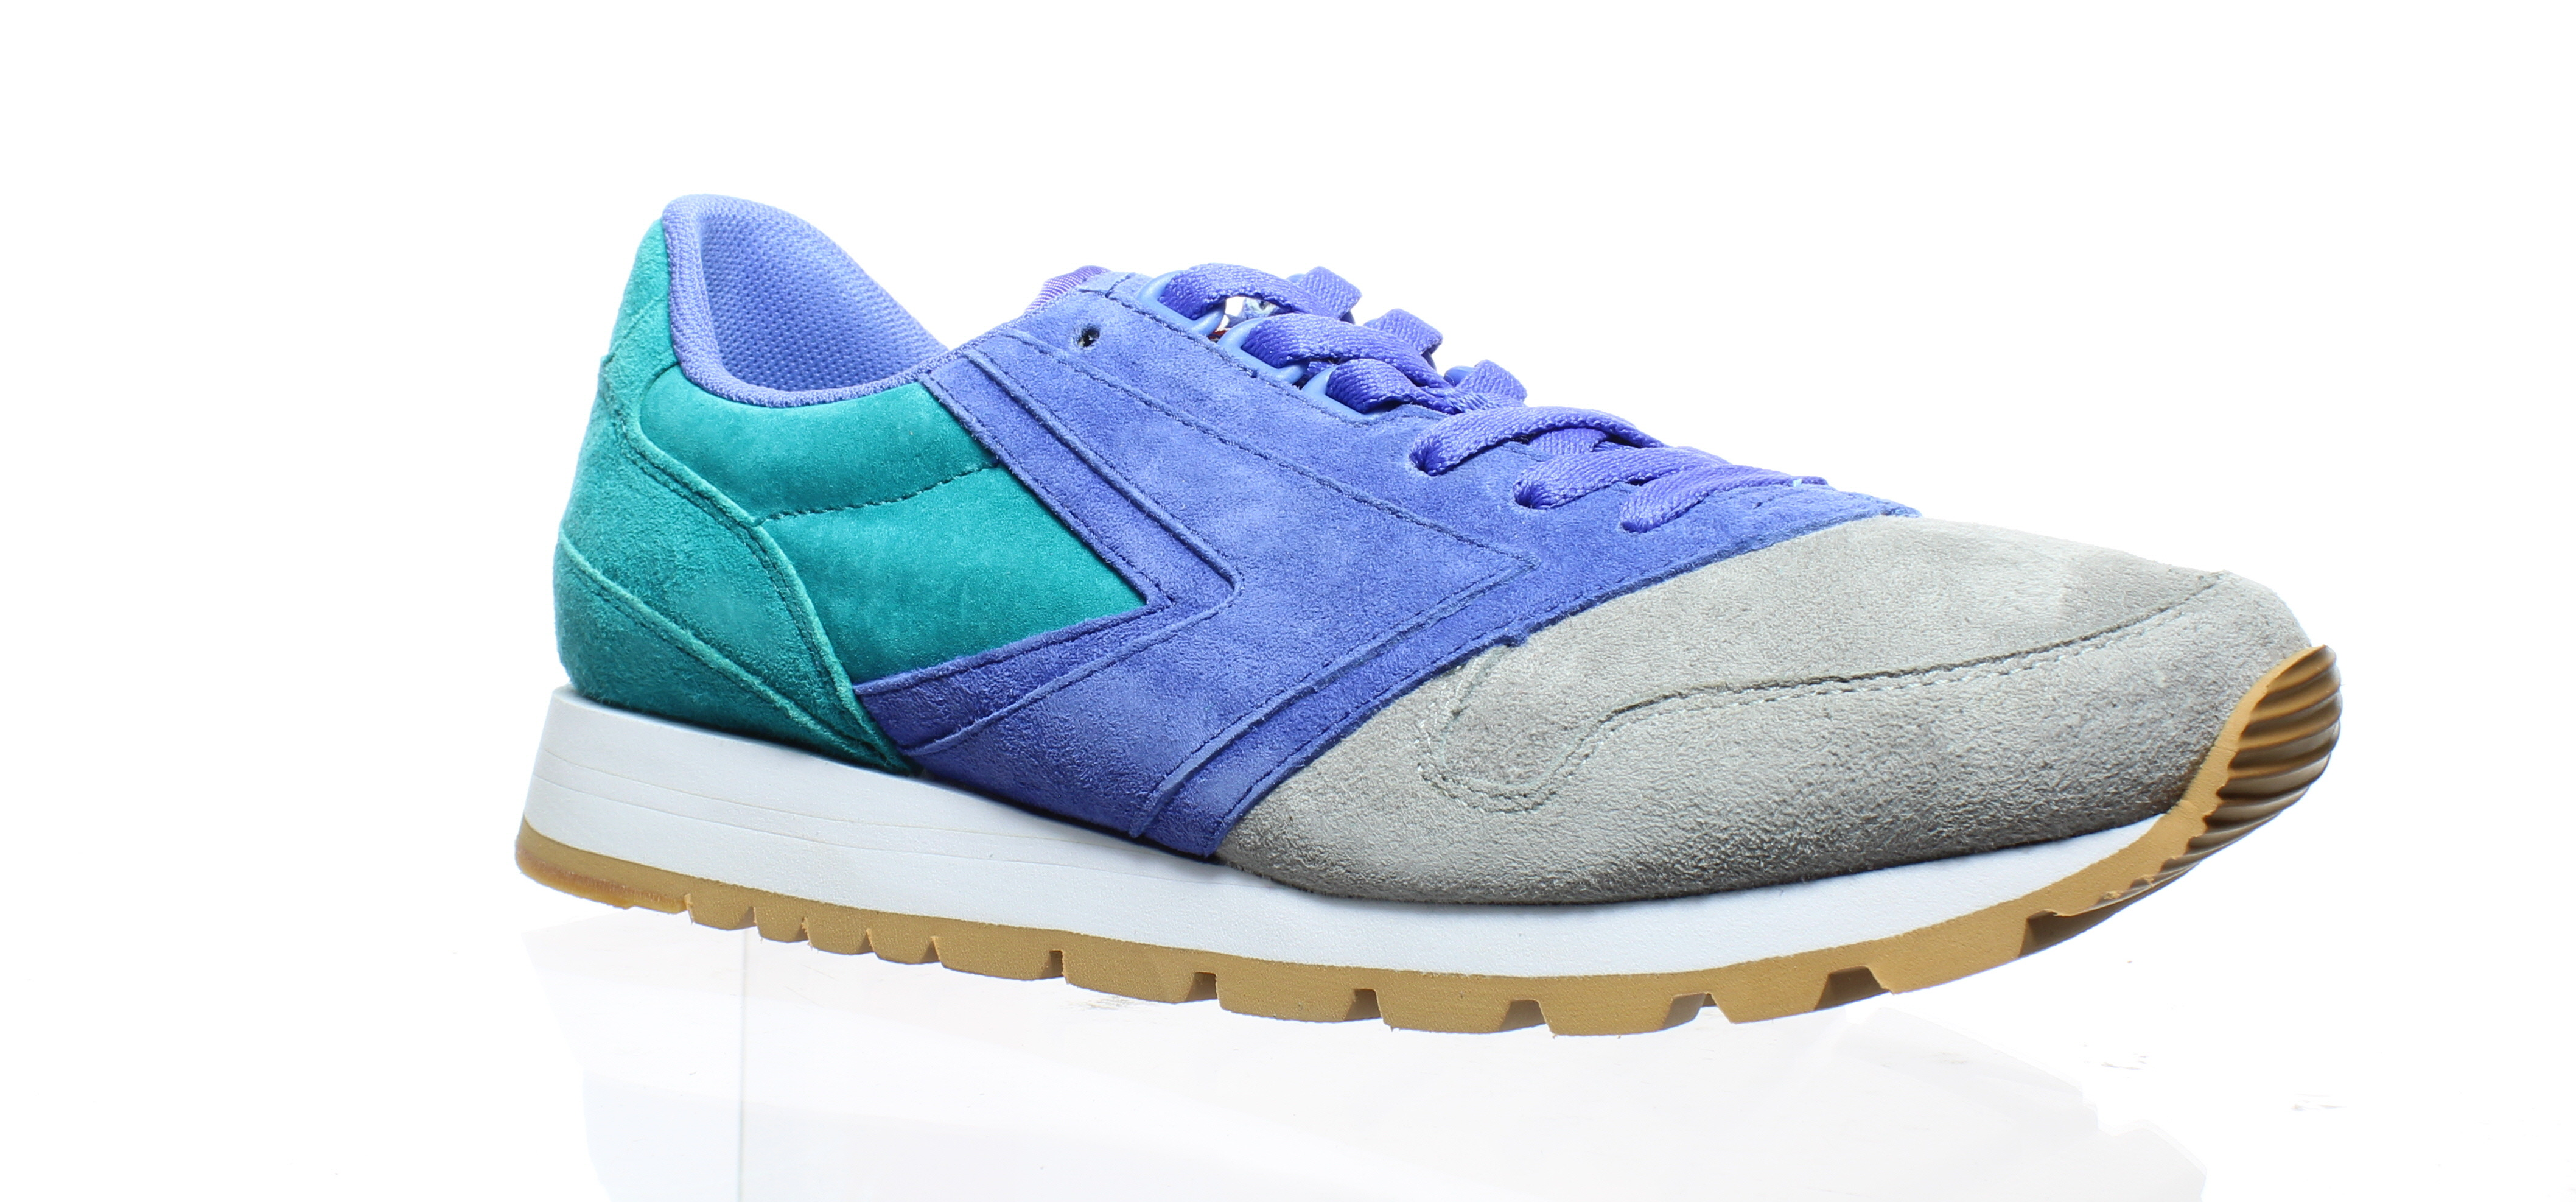 486fb0676b1 Brooks Womens Chariot Blue Running Shoes Size 9 (50730) 762052635073 ...